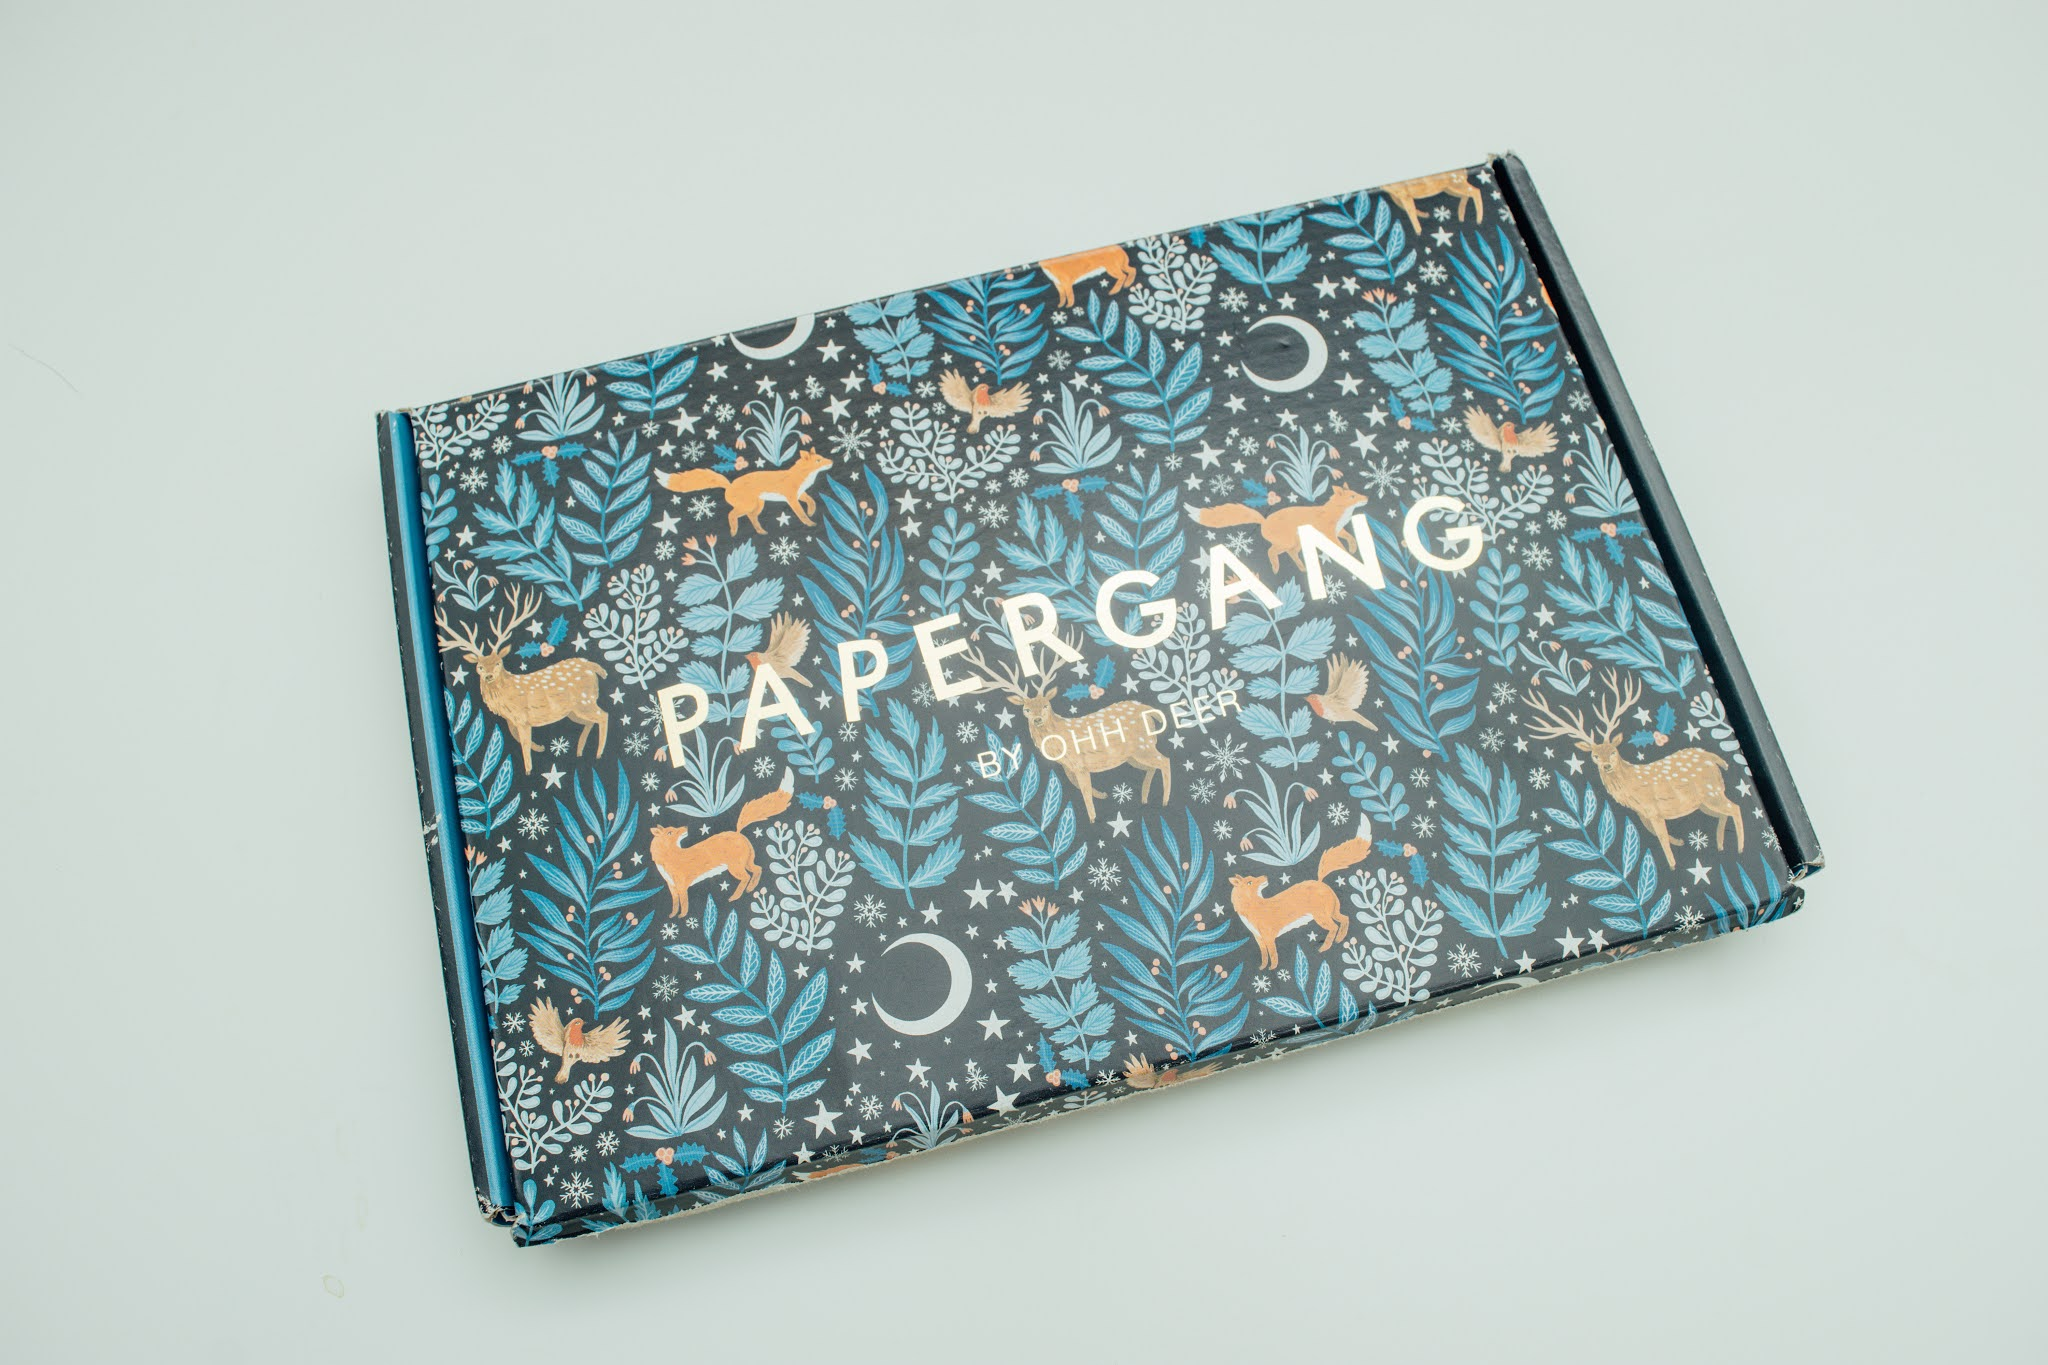 A navy box with a floral and leafy blue design with fox illustrations